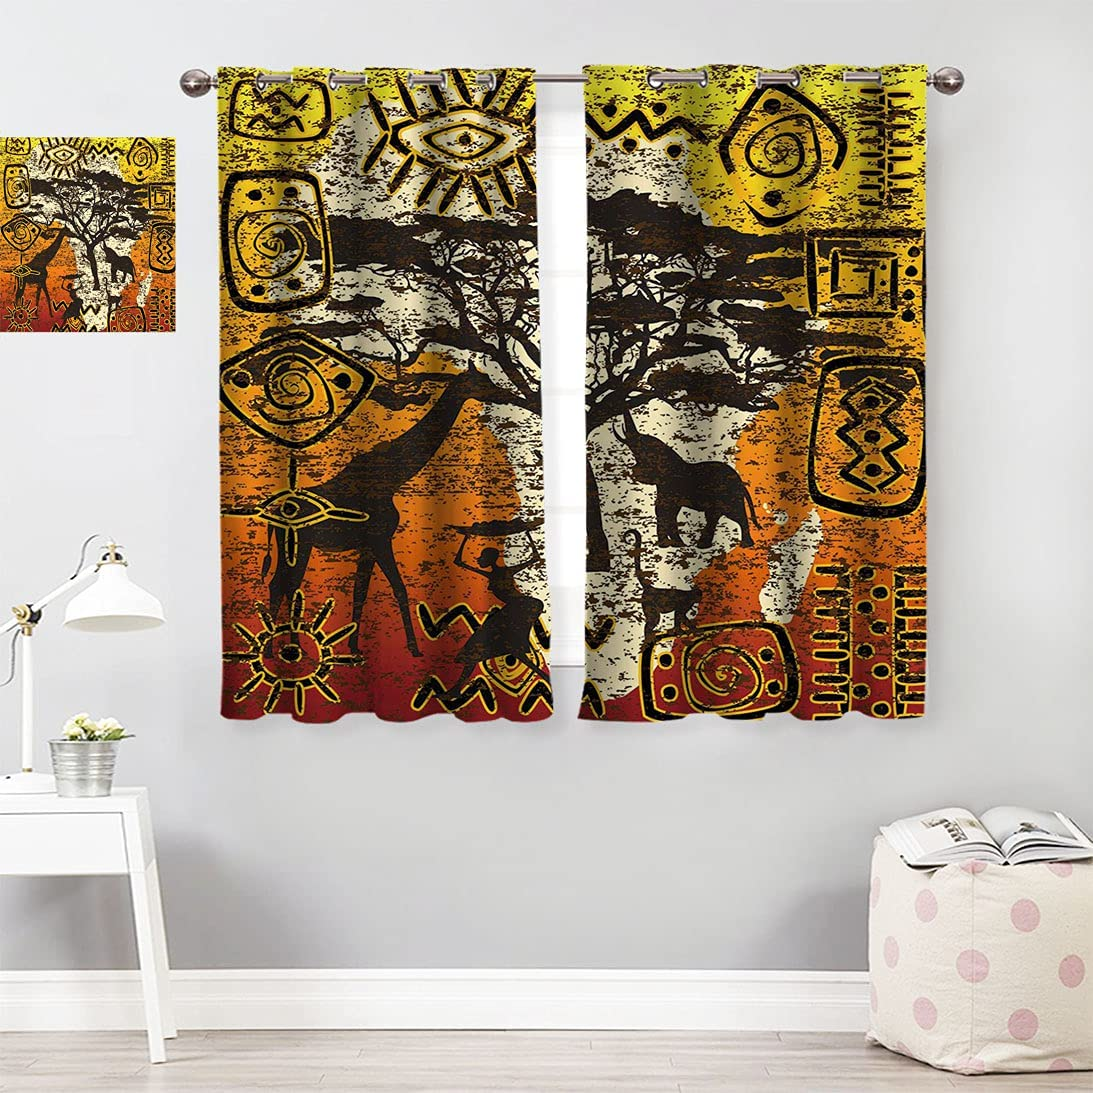 Amazing Las Vegas Mall African Decor Farm House Symbols wi Set Cheap mail order specialty store Curtain